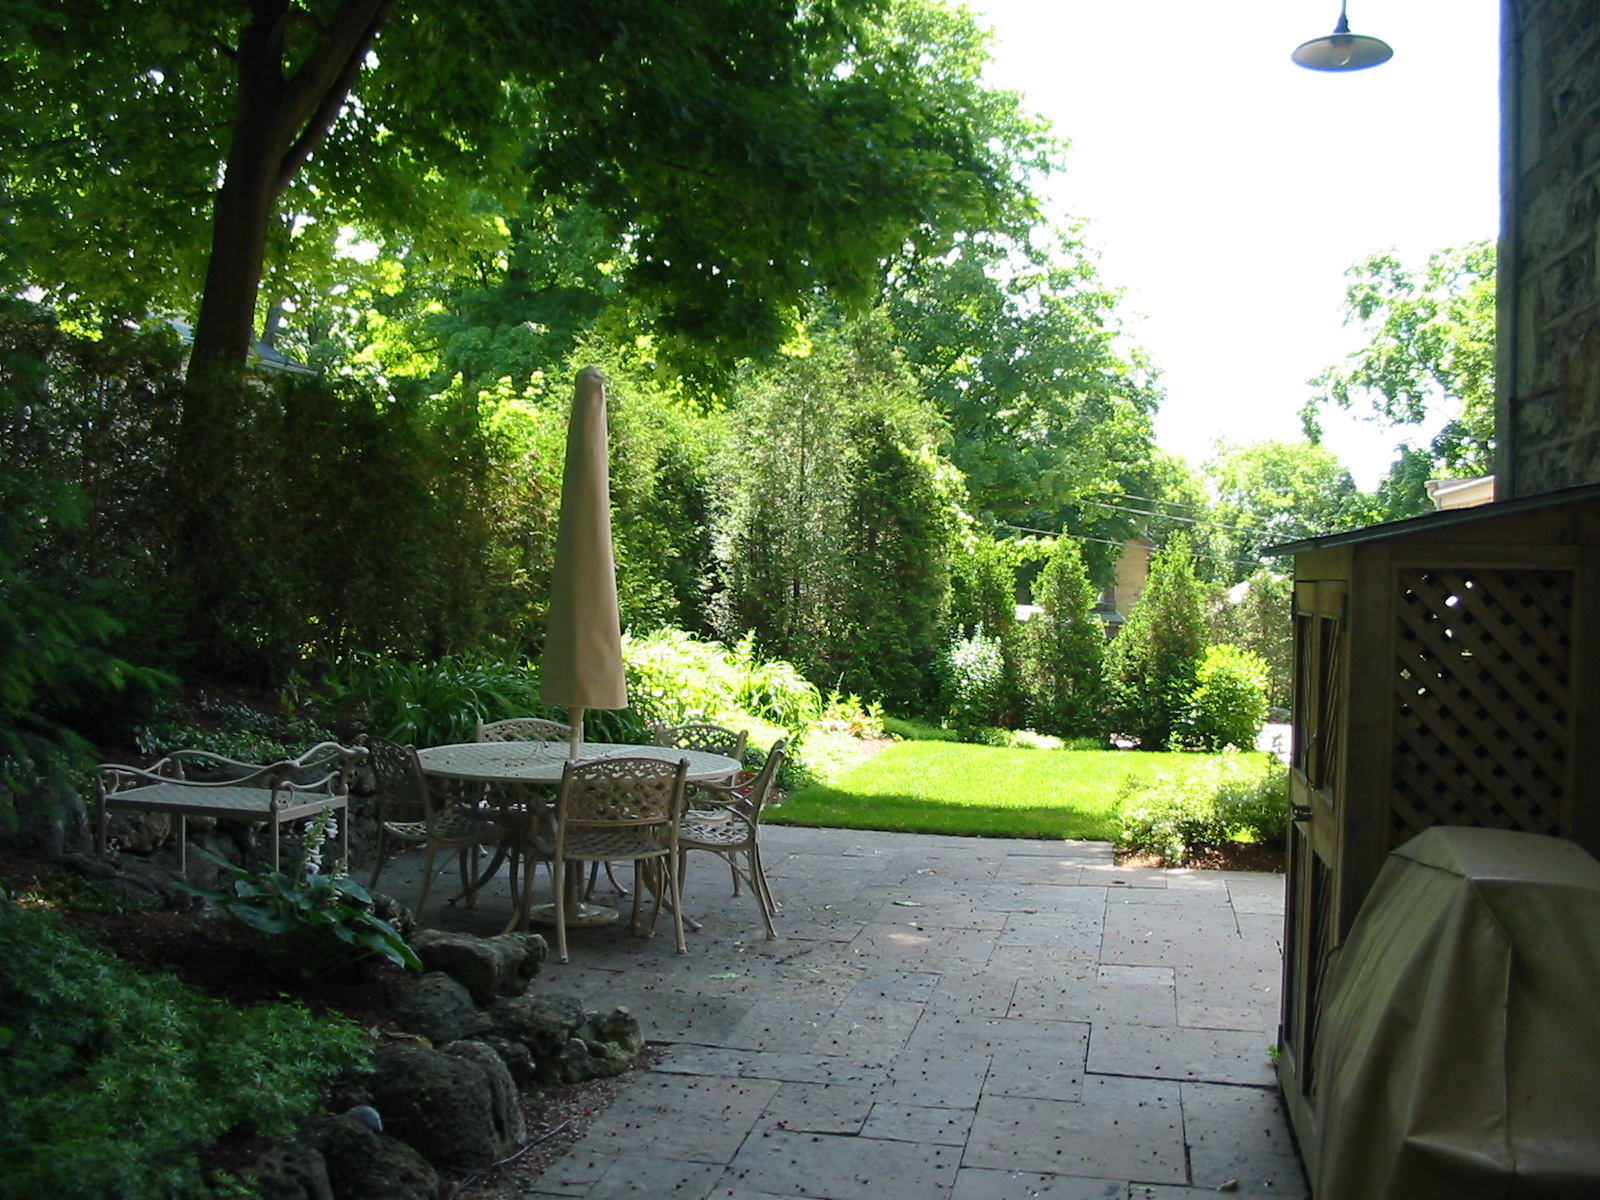 A shady patio surfaced with square cut natural stone